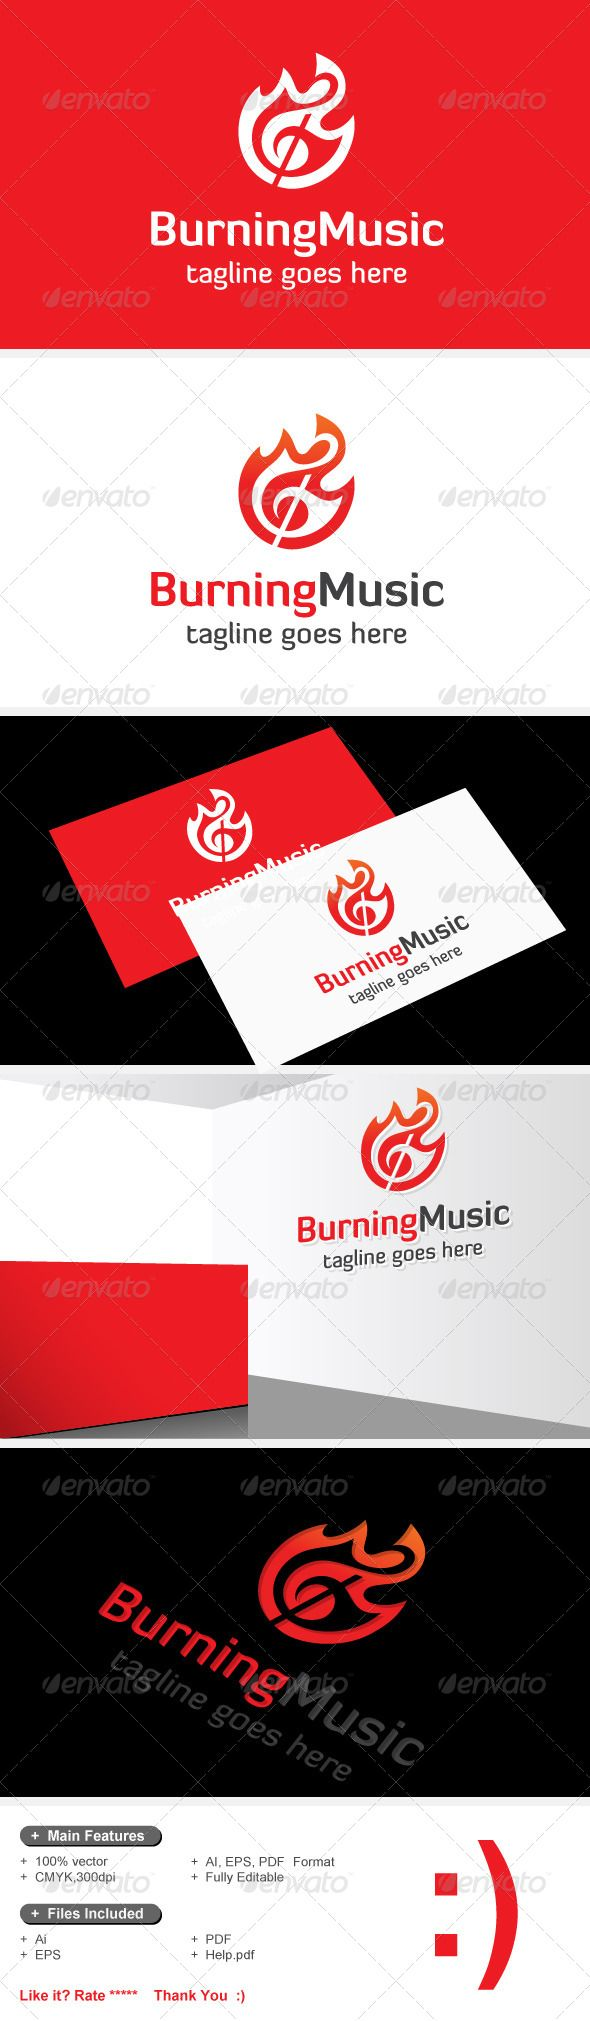 Burning Music & Fire Song Logo — Vector EPS #tone #artist • Available here → https://graphicriver.net/item/burning-music-fire-song-logo/7530136?ref=pxcr